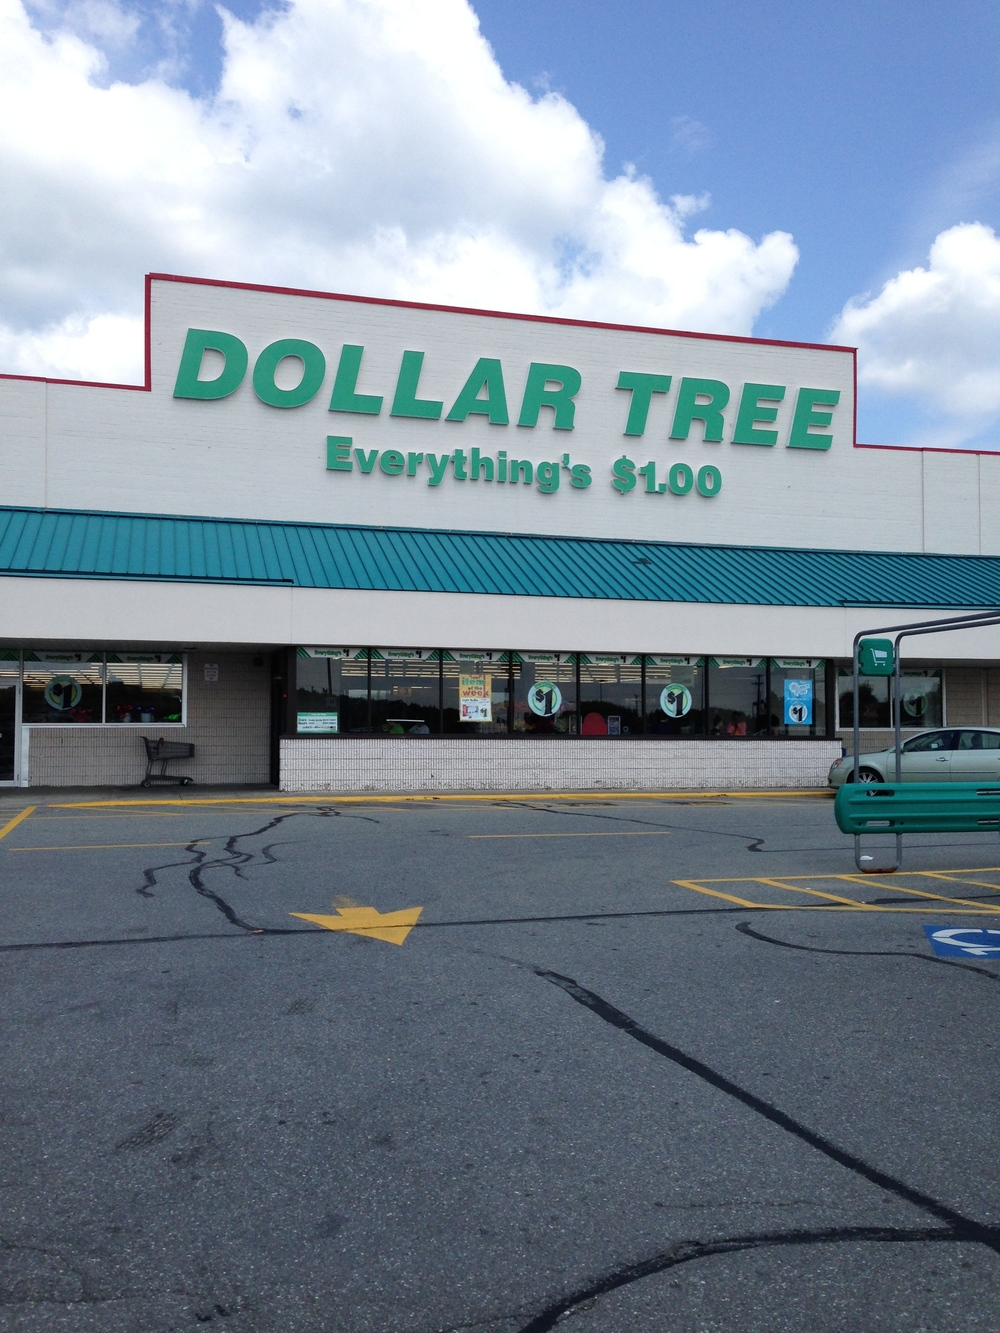 The Dollar Tree, 2014. Shop here for $1 products. Duh.